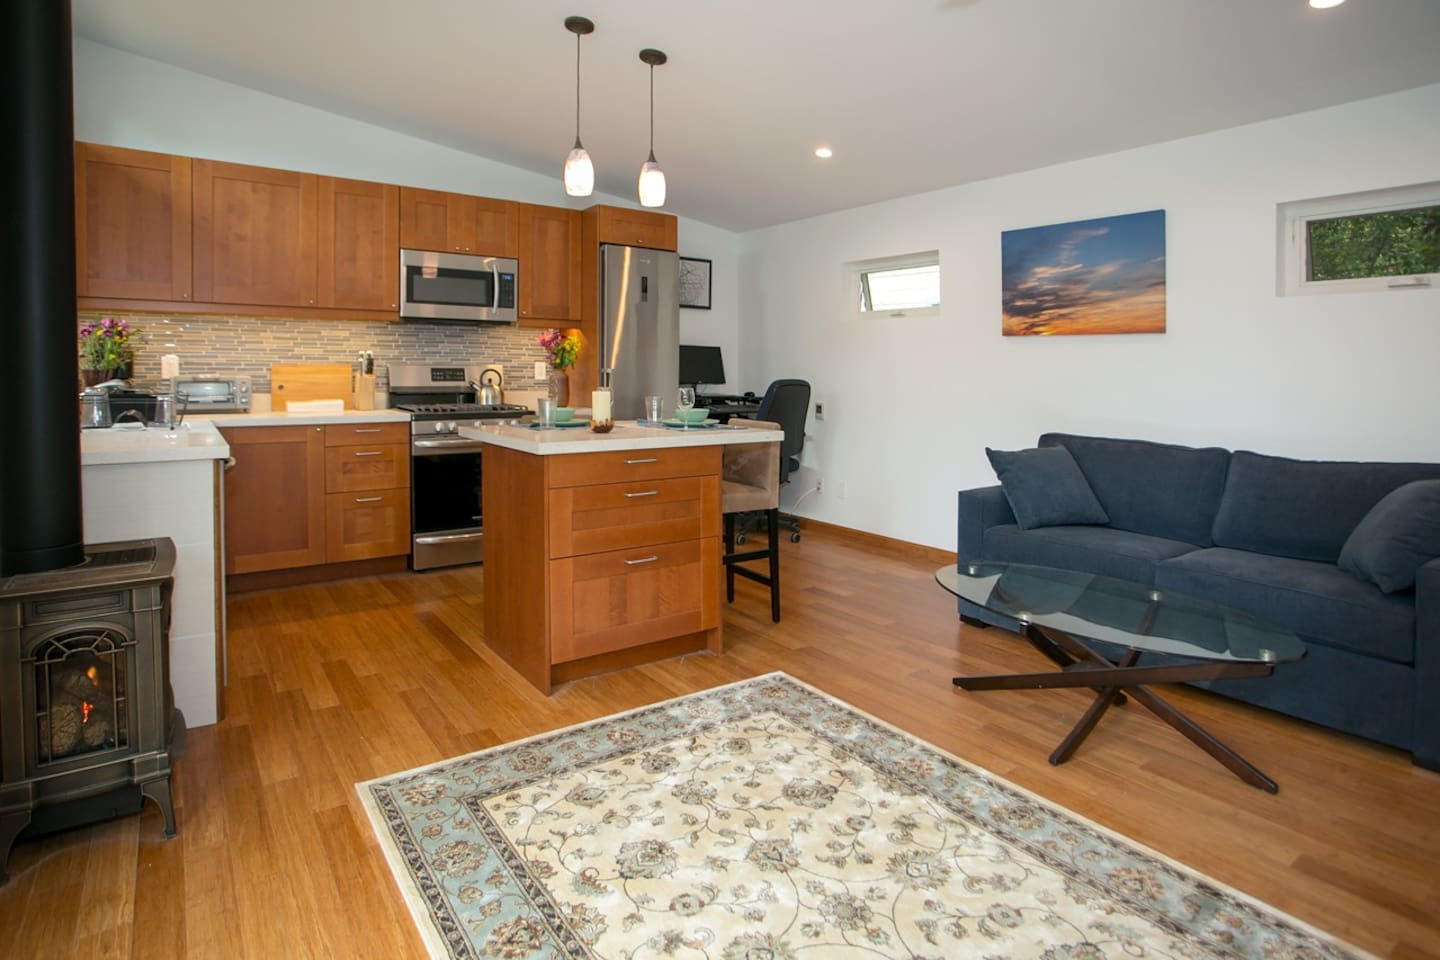 Newly built 500 square foot cottage with open floor plan.  Lots of daylight, fireplace, and home office setup.